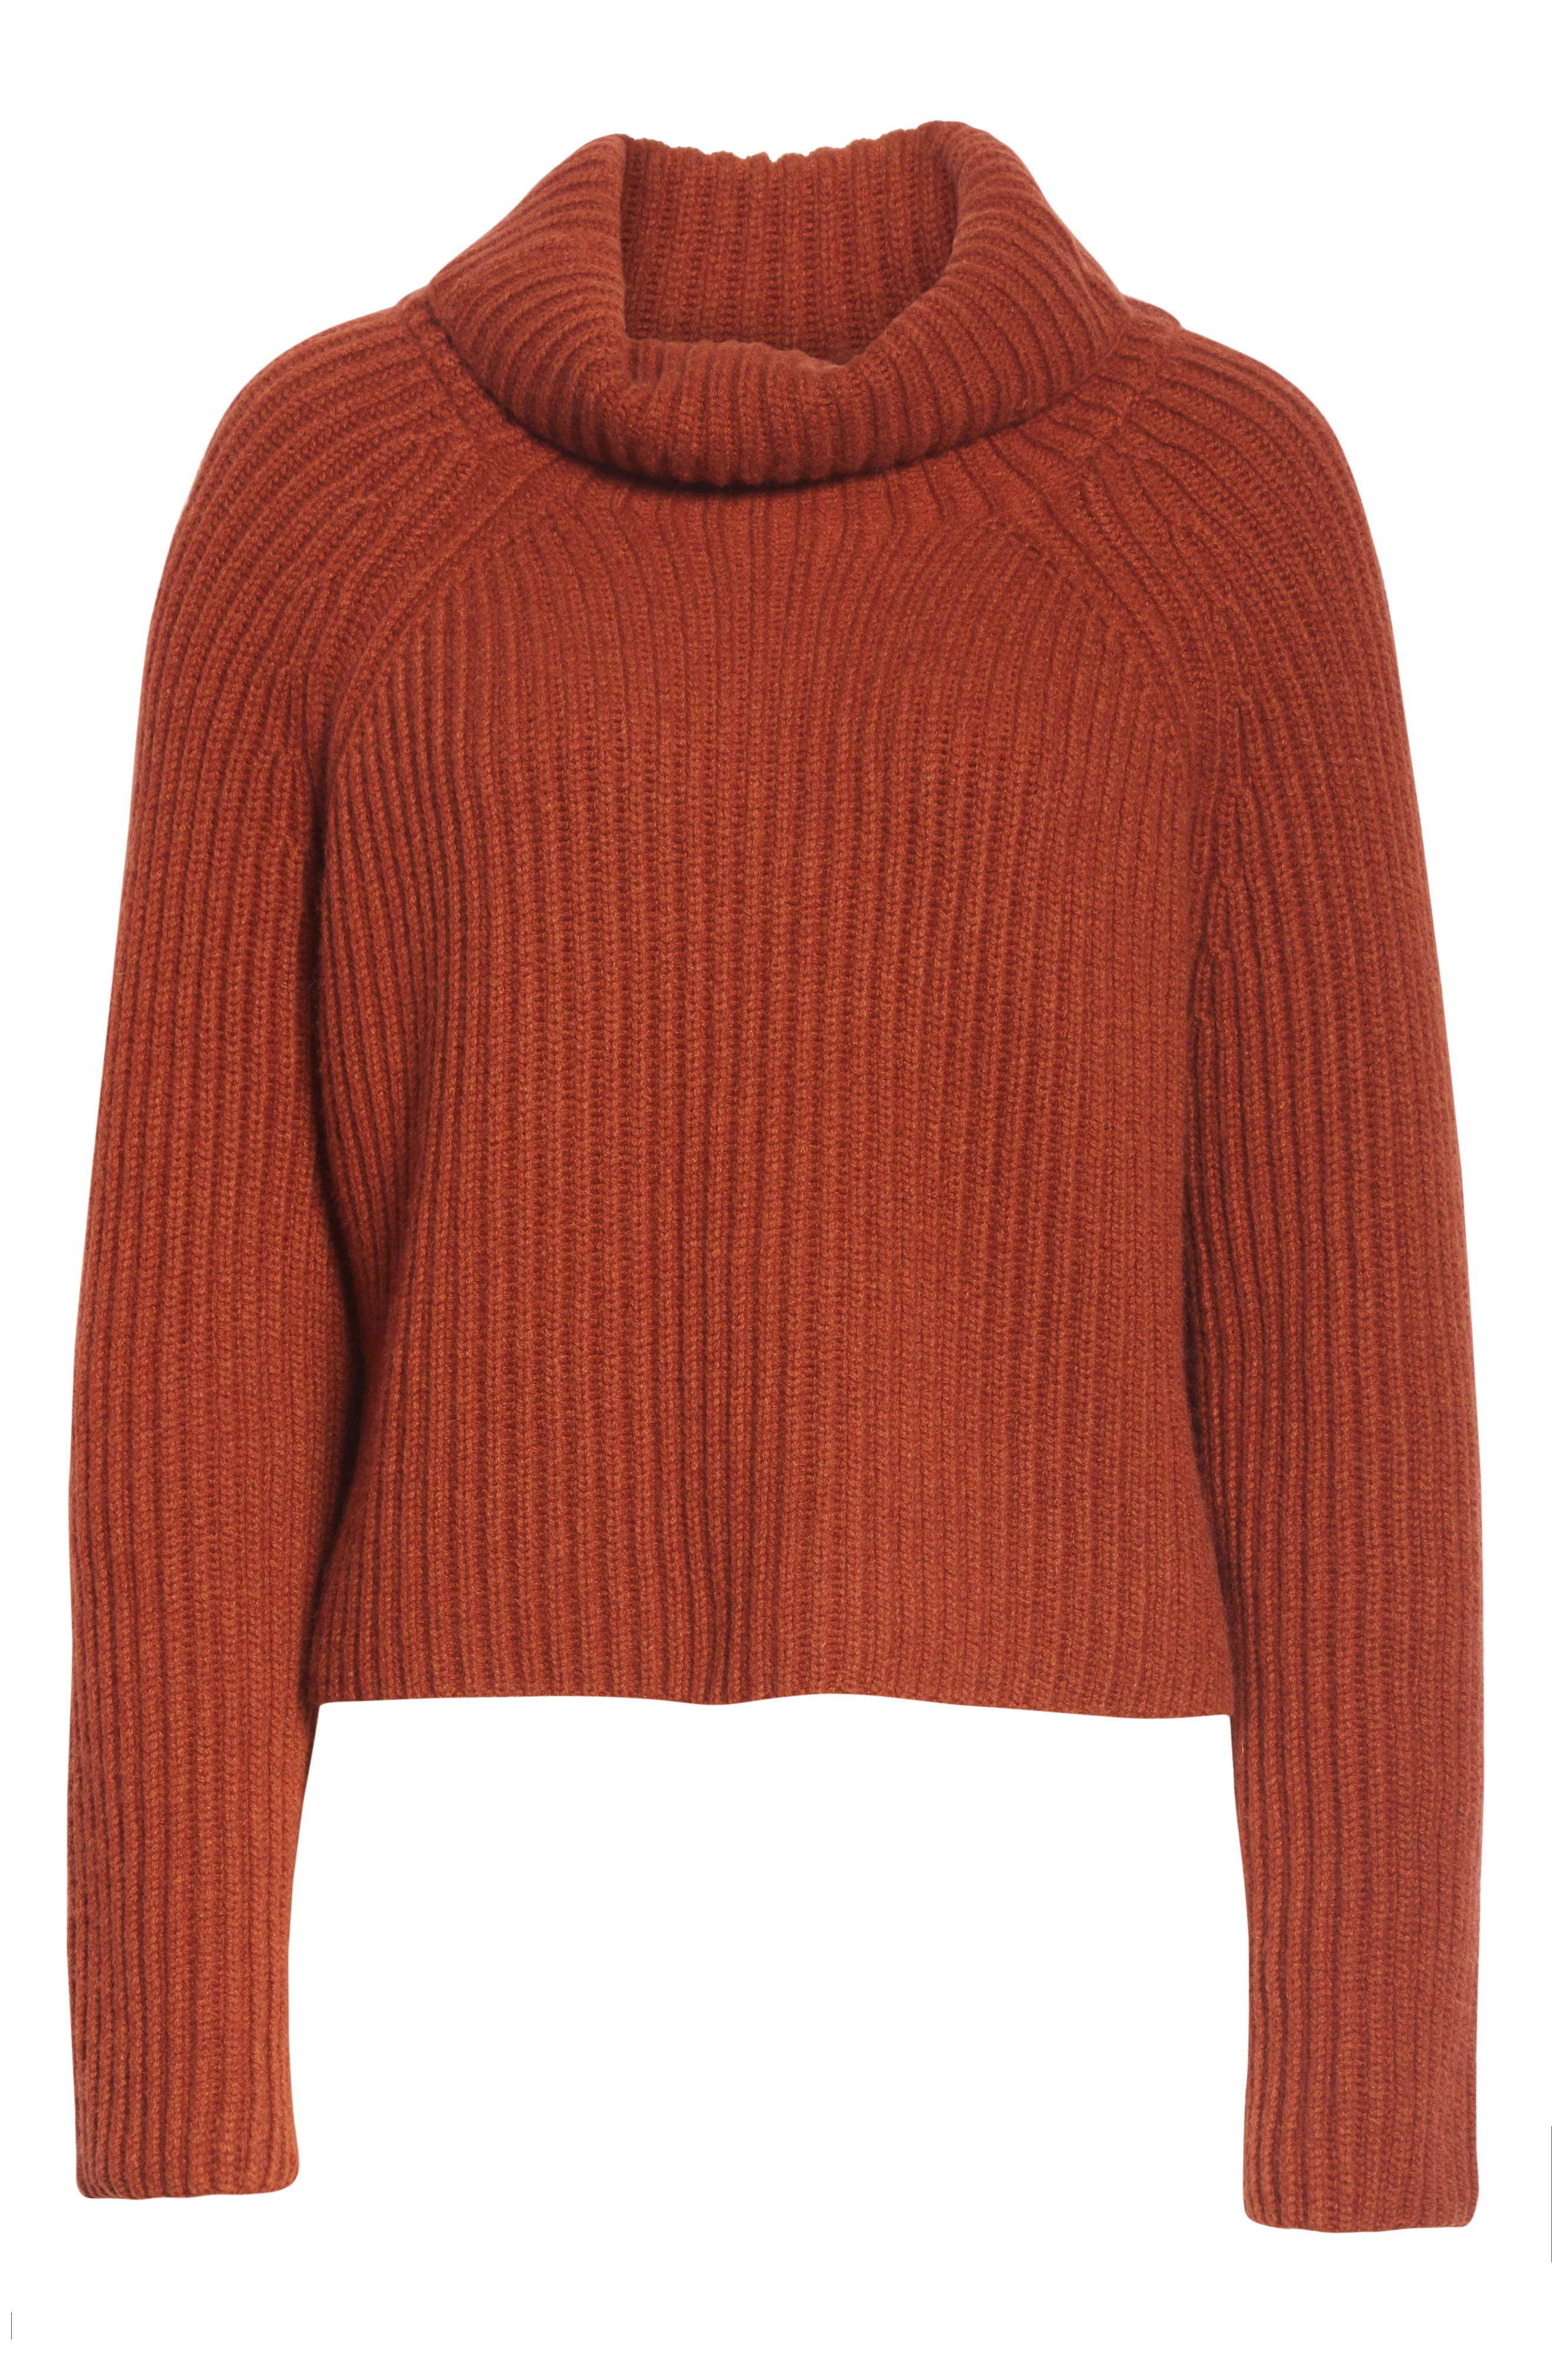 Ribbed Cashmere Turtleneck Sweater,                             Alternate thumbnail 6, color,                             221